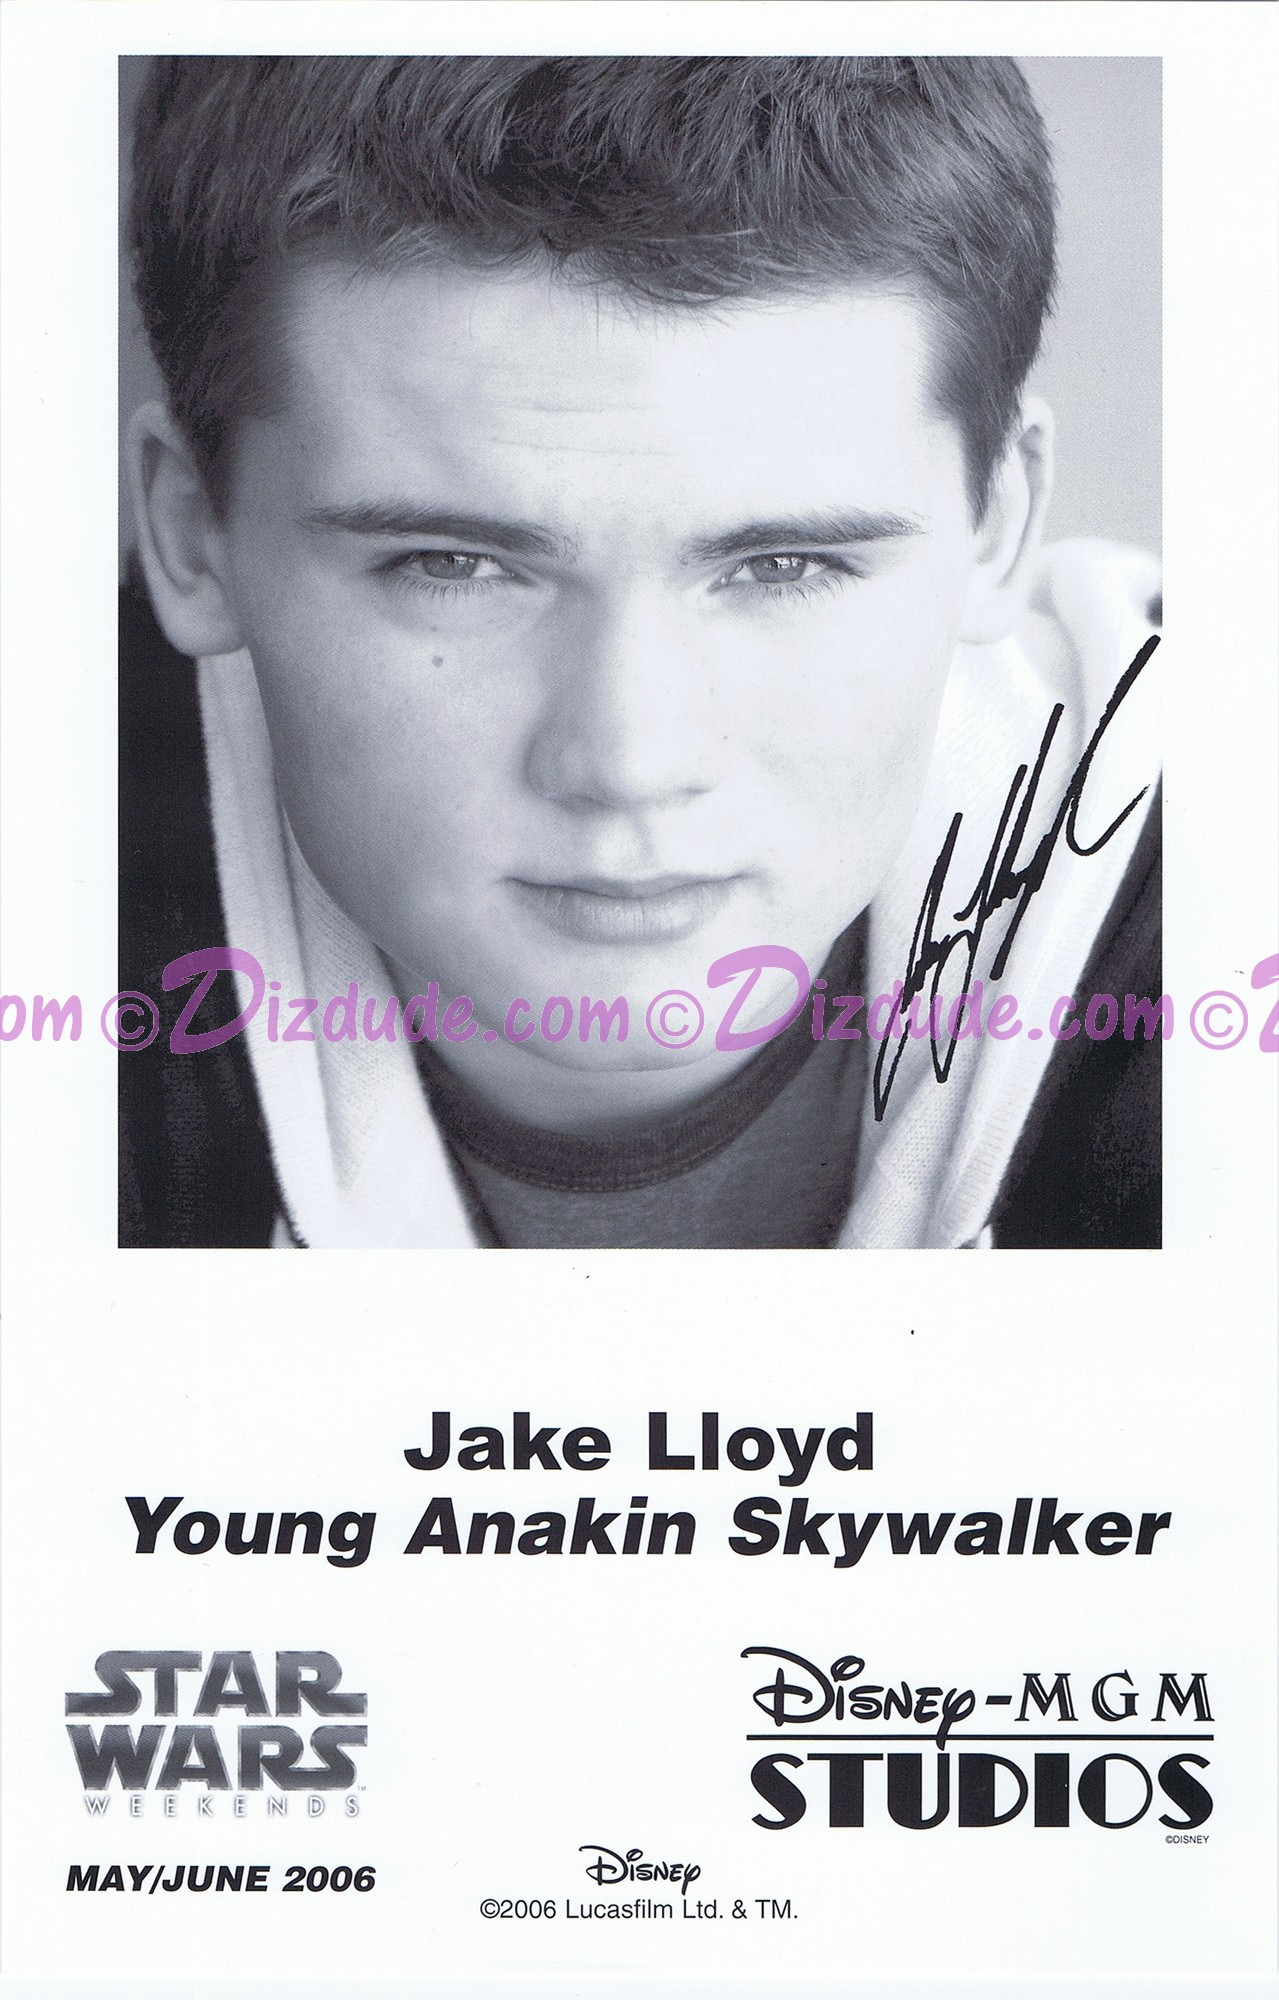 Jake Lloyd who played Young Anakin Skywalker Presigned Official Star Wars Weekends 2006 Celebrity Collector Photo